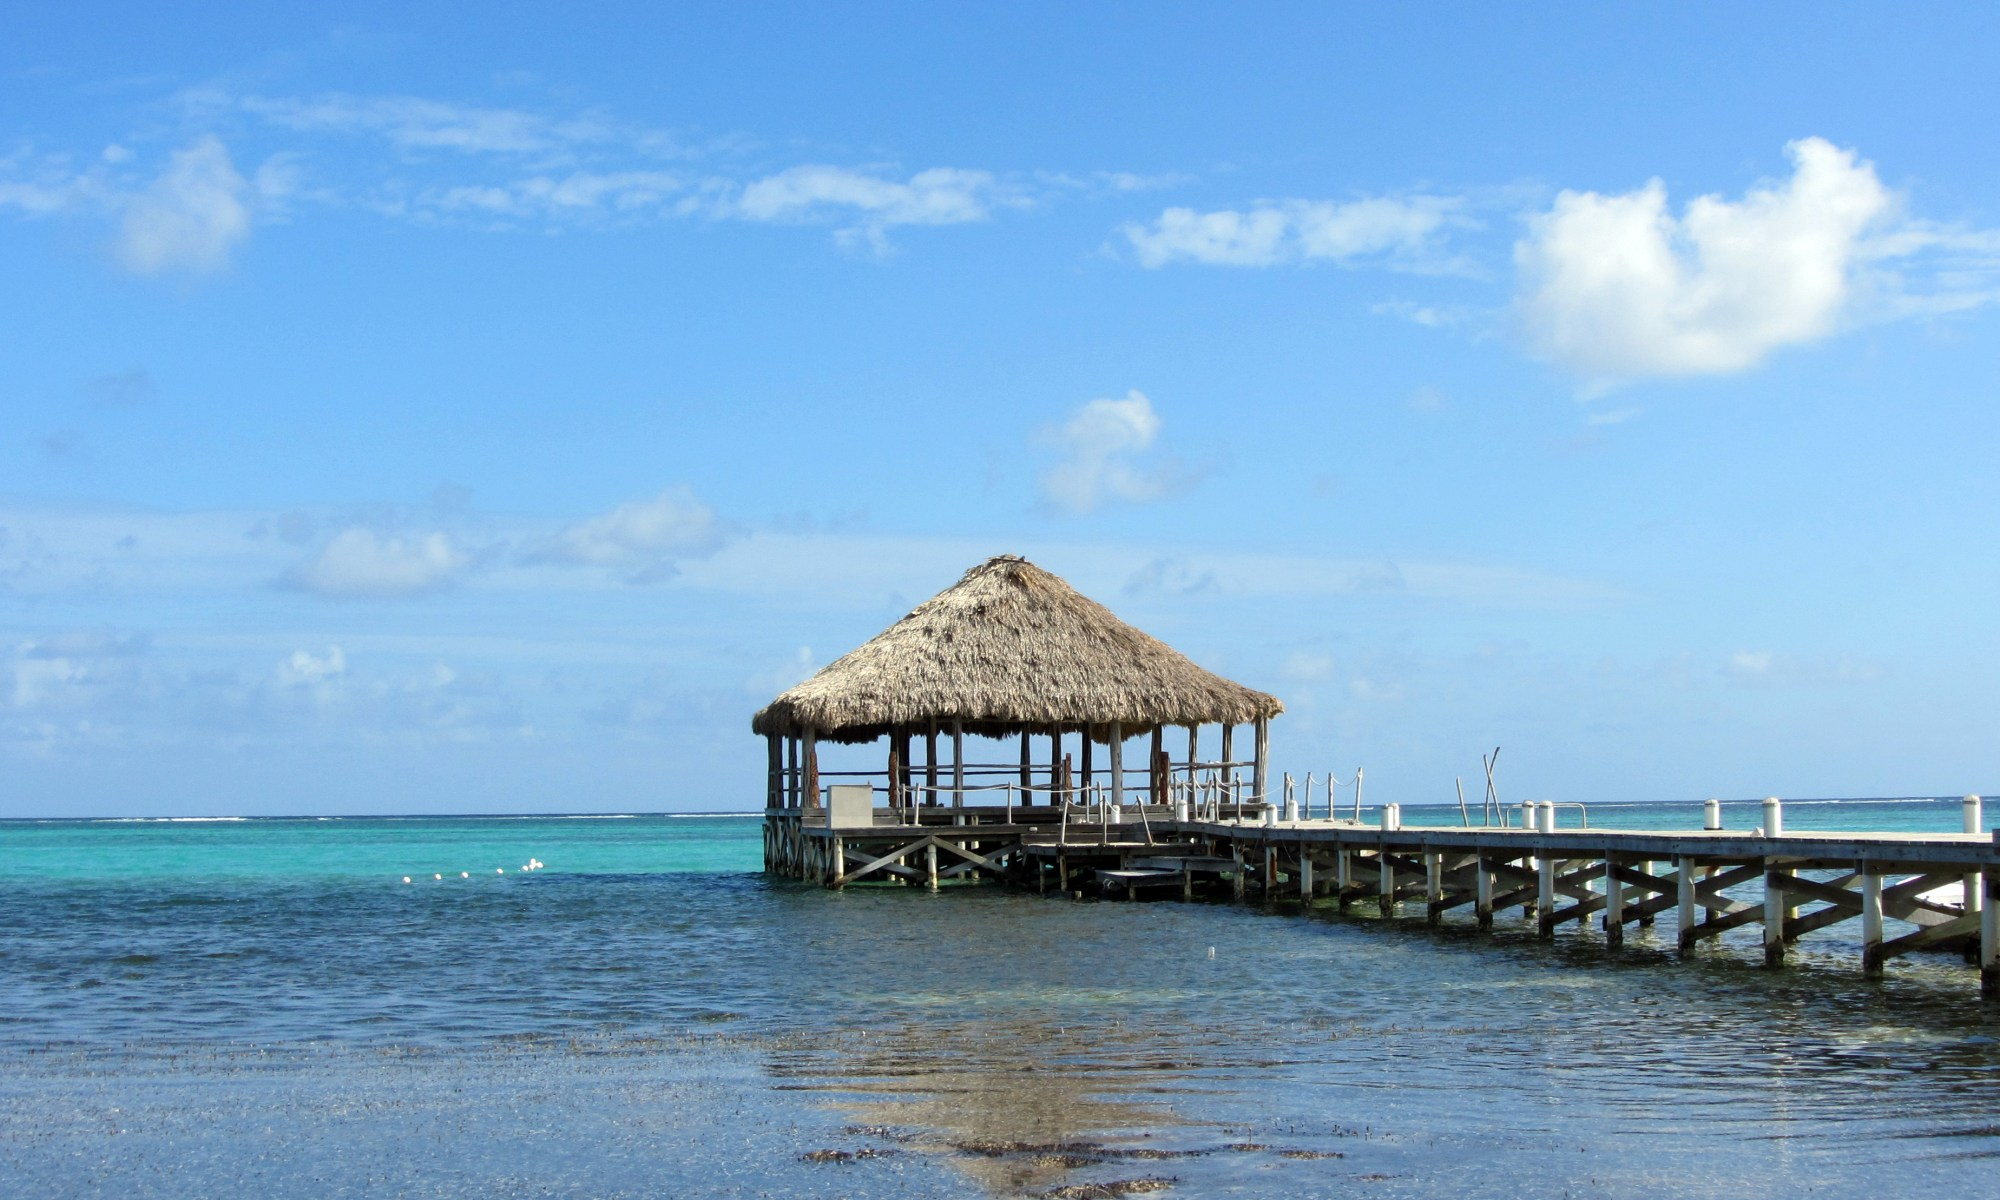 Palapa in Belize